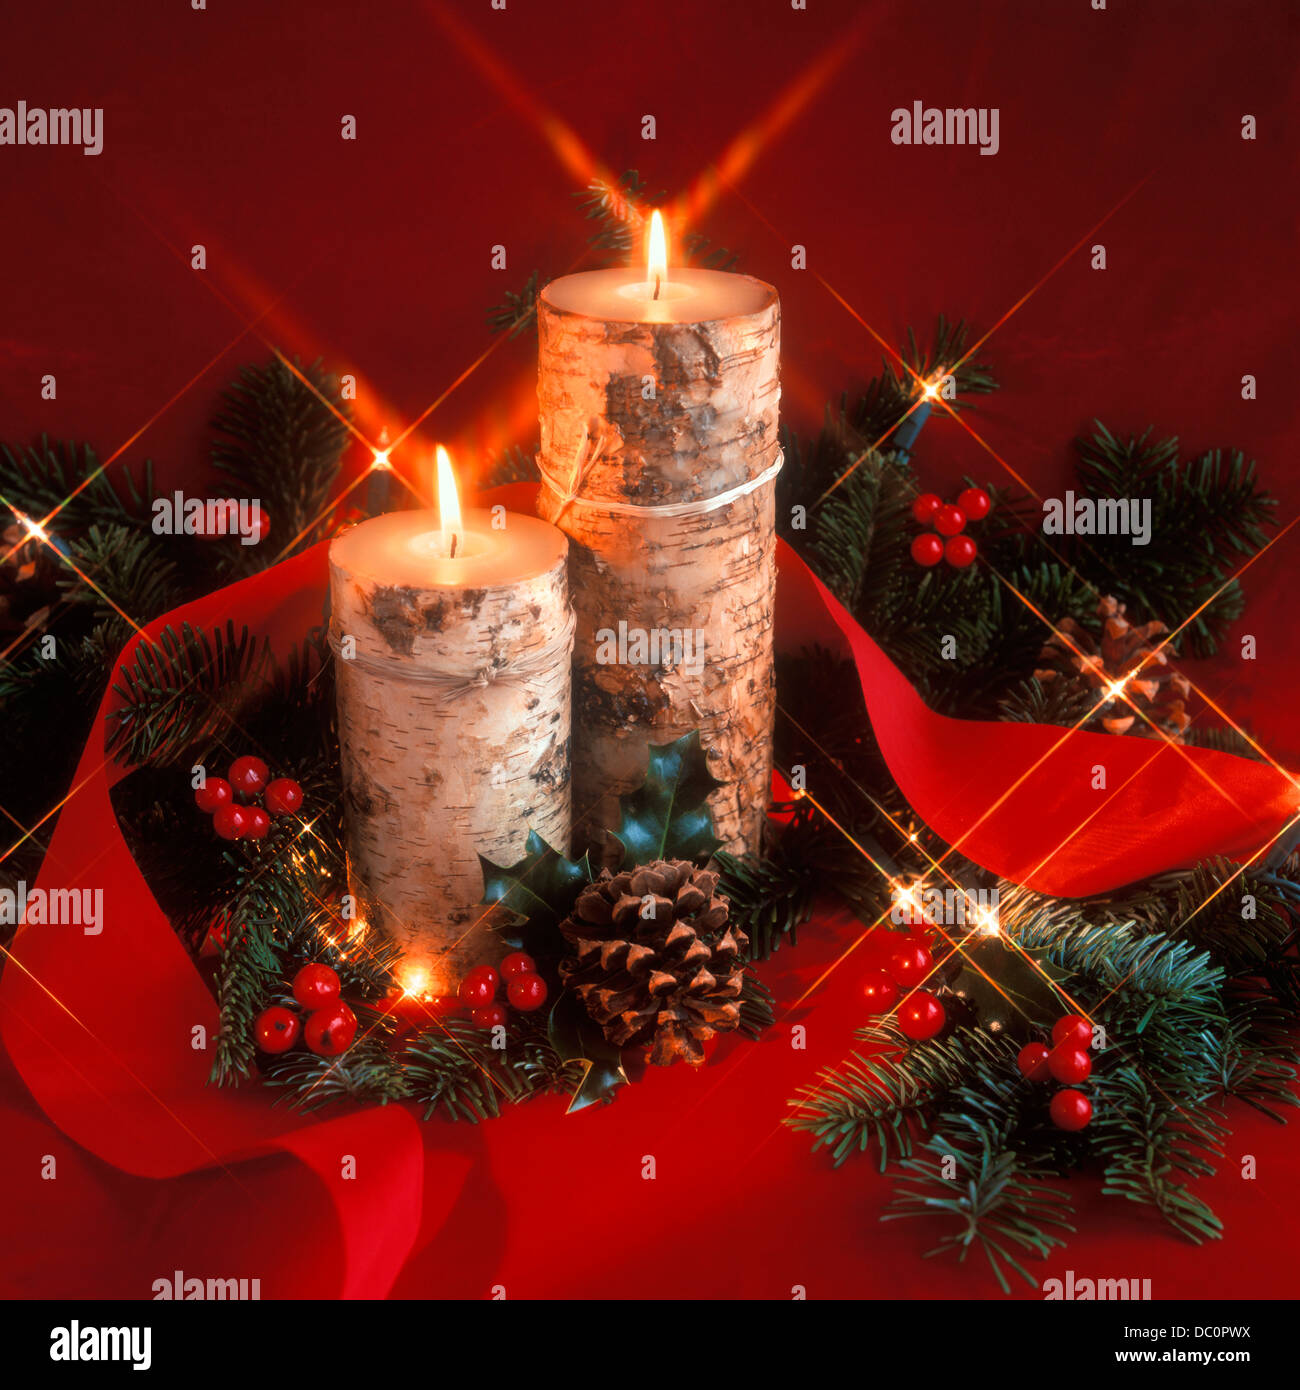 CHRISTMAS STILL LIFE WITH BARK COVERED CANDLE HOLDERS HOLLY BERRIES GREENS AND PINE CONES - Stock Image